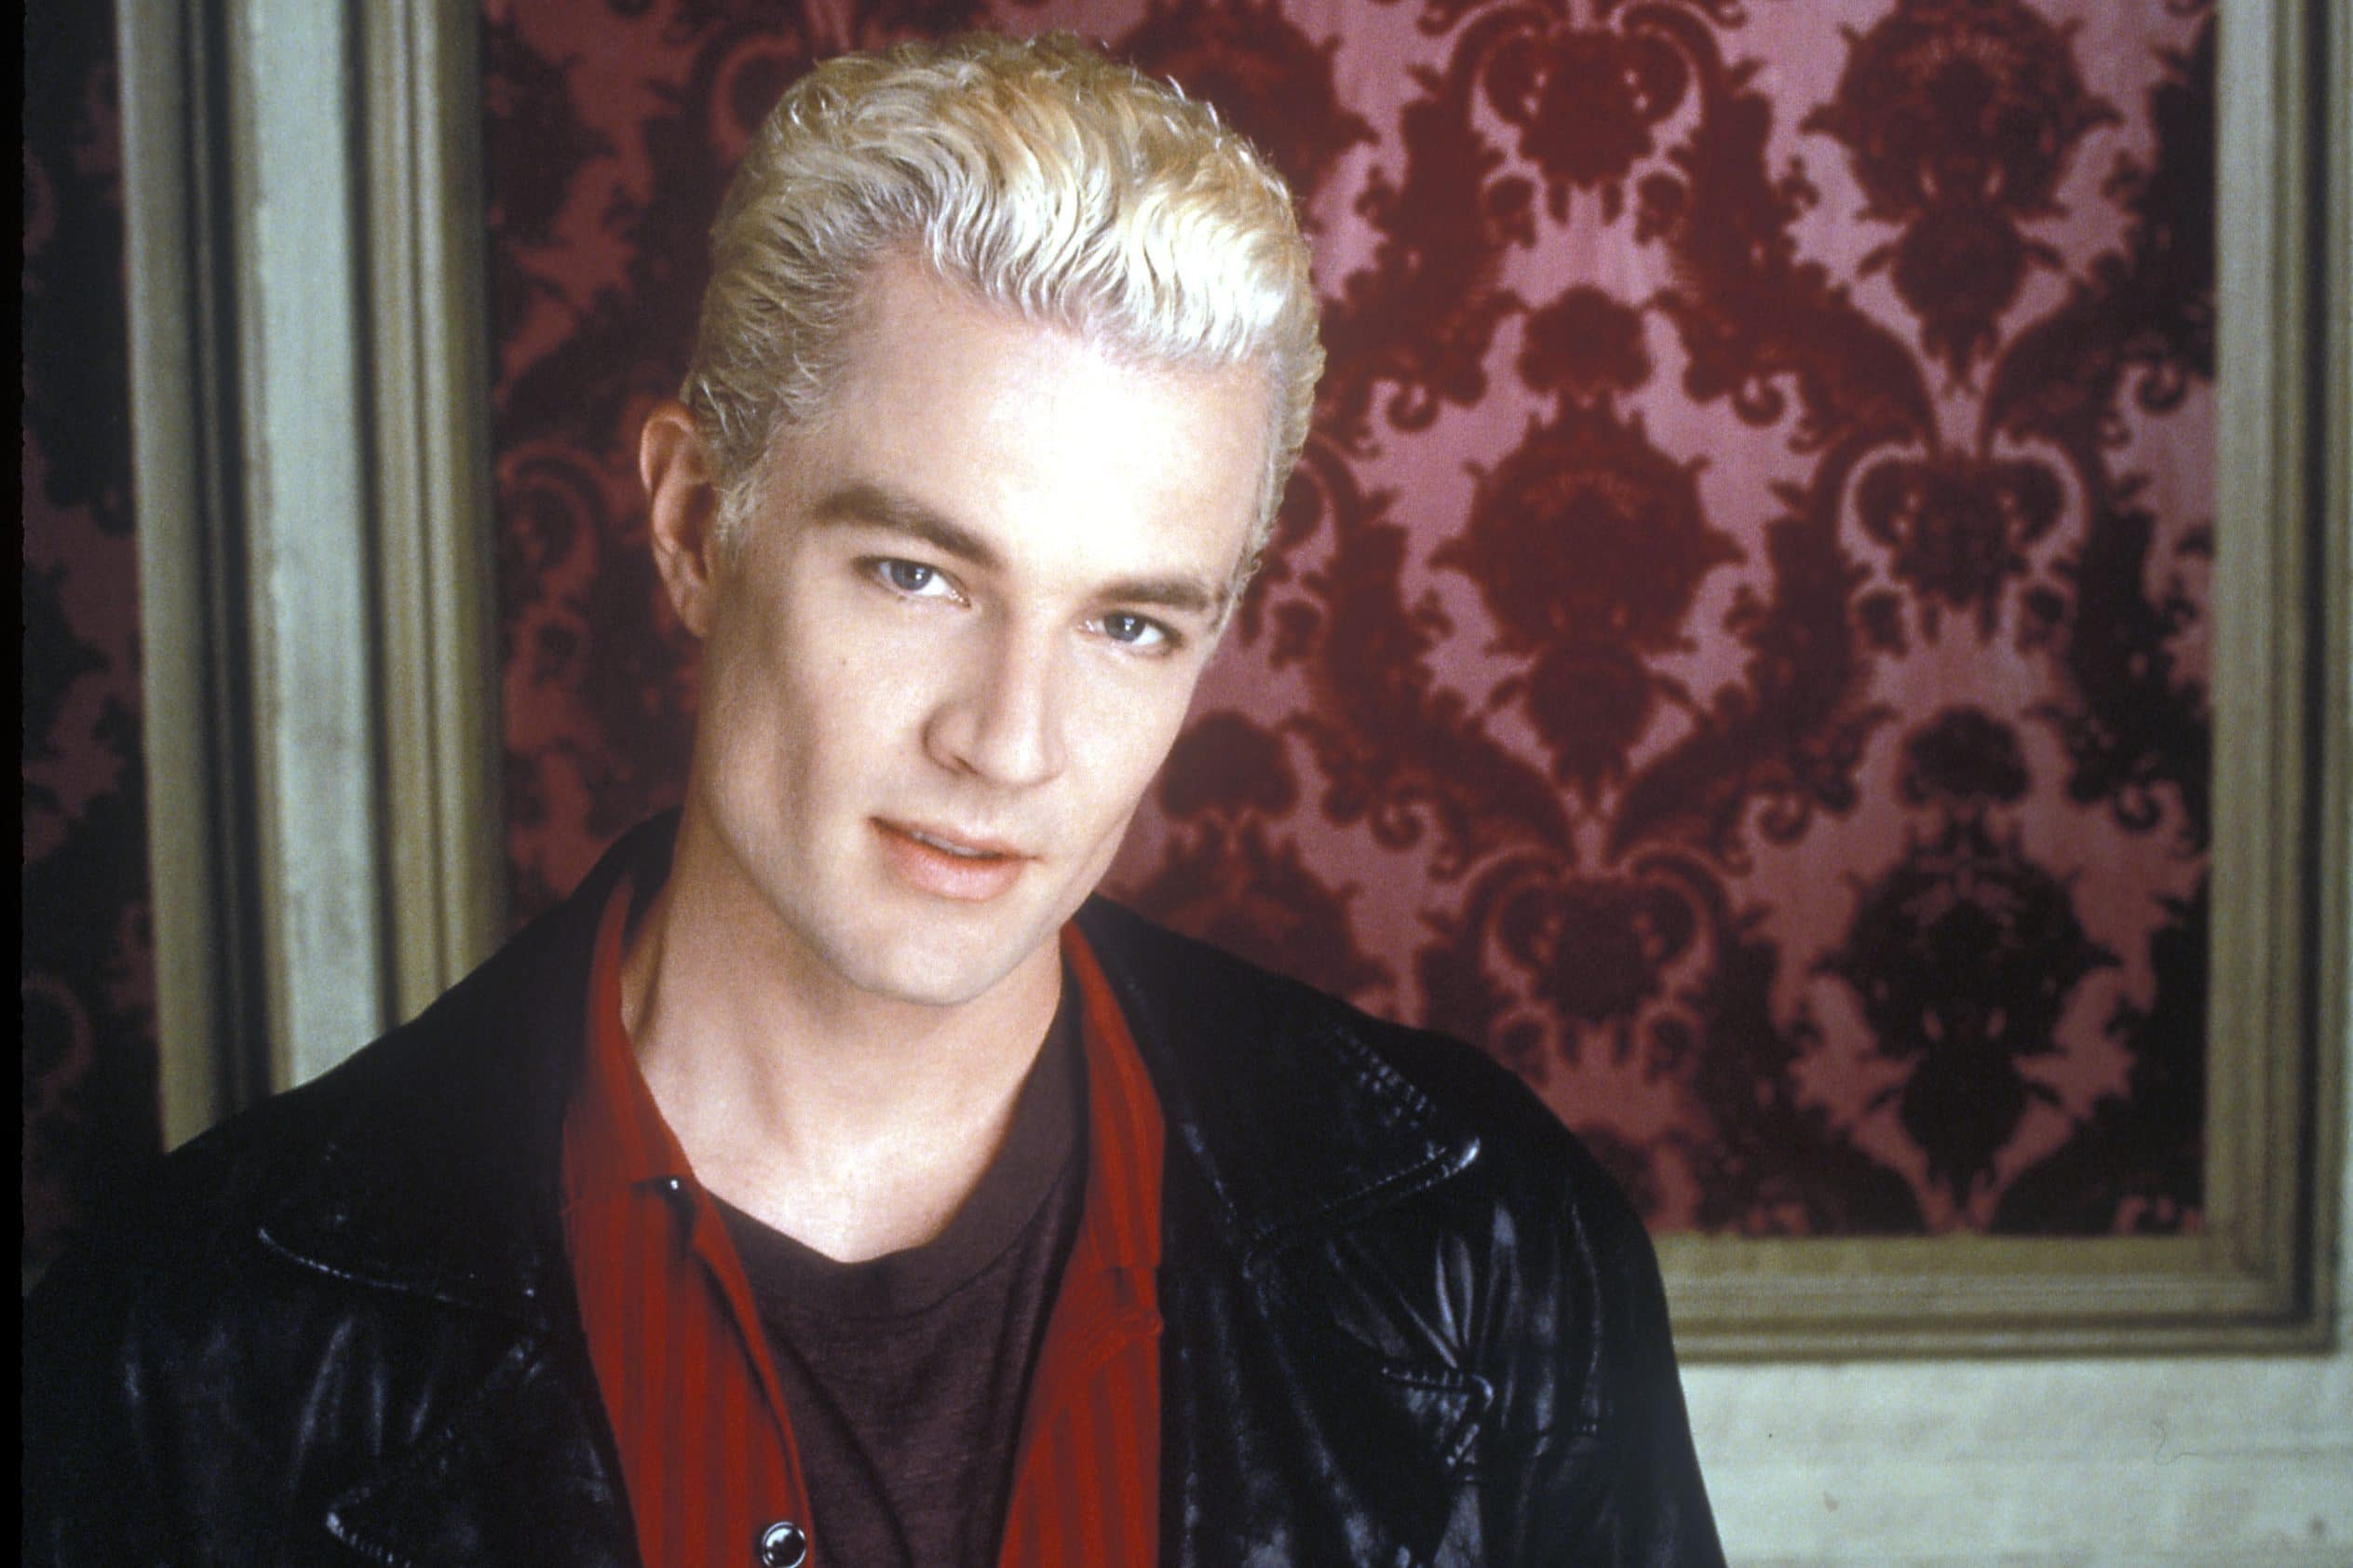 James Marsters American Actor, Musician, Voice Actor